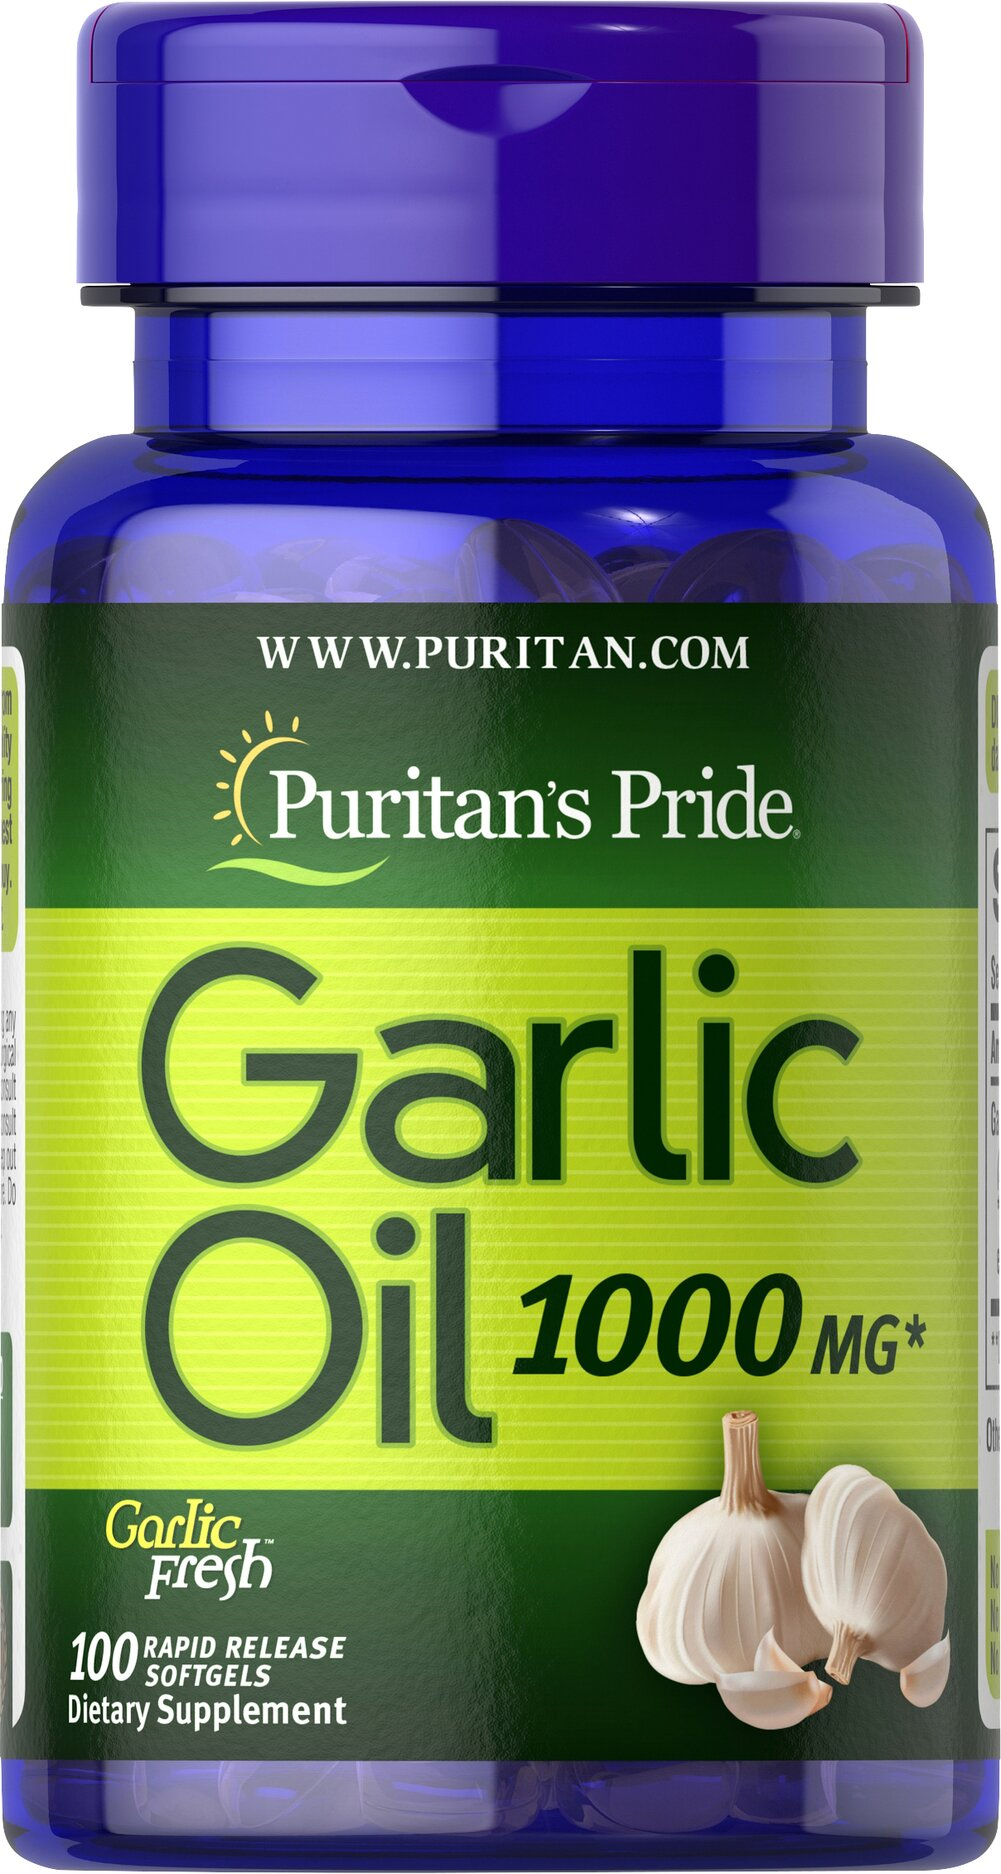 Garlic Oil 1000 mg  100 Softgels 1000 mg $6.99